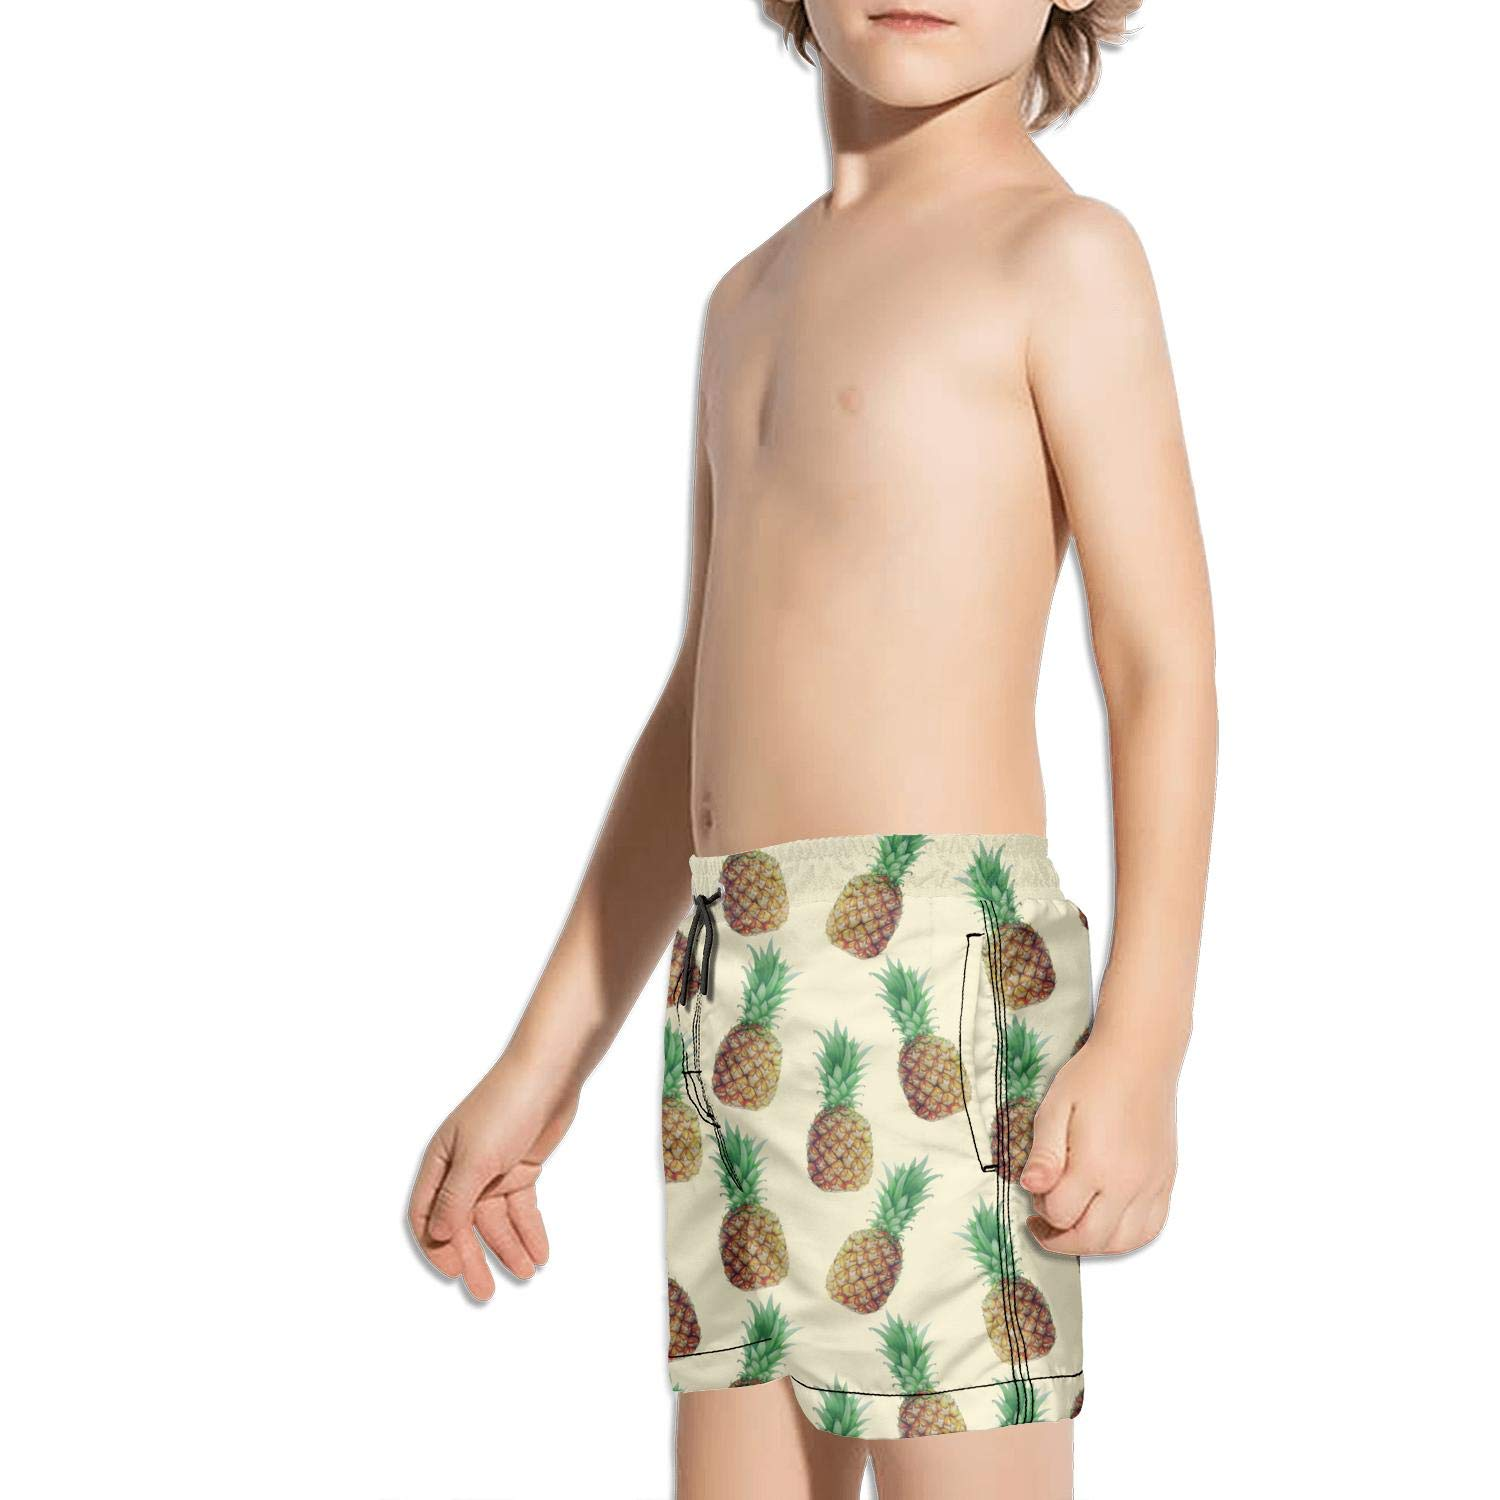 DSDRFE2DEW Swimming Trunks Happy Pink and Green Pineapple Face Fully Lined Shorts for boyswith Drawstring